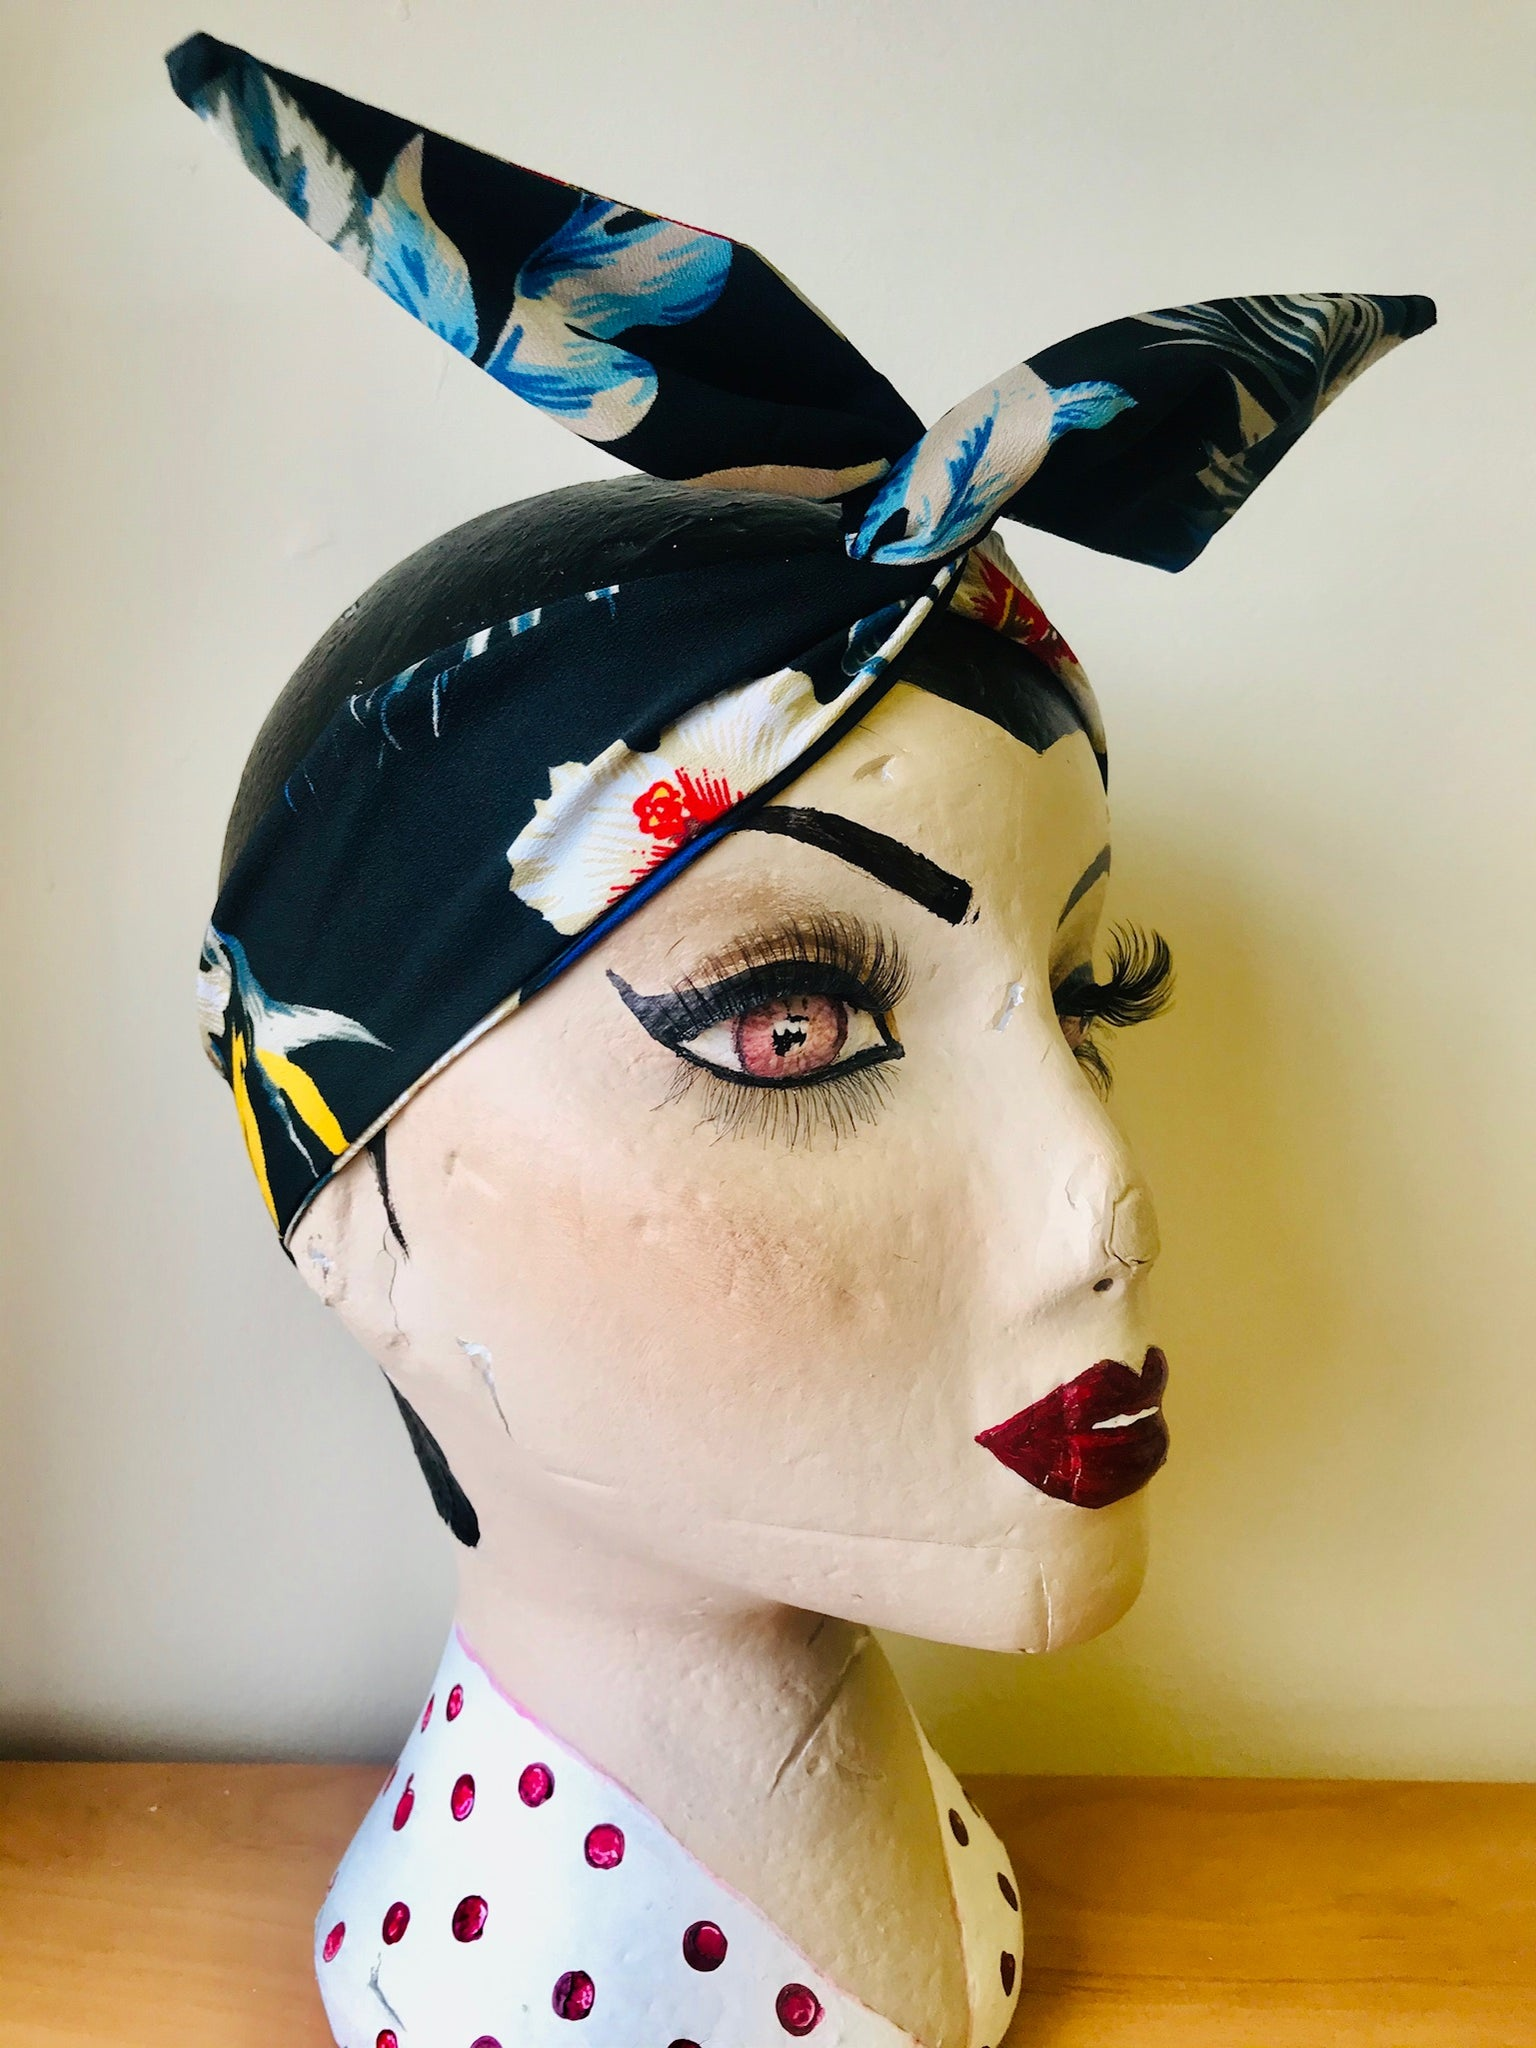 Wired Headband (No Tying Fiddly Knots or Bows) 1950s Rockabilly / 1940s Landgirl Style .. In Our Black Hawaiian Print - RocknRomance True 1940s & 1950s Vintage Style